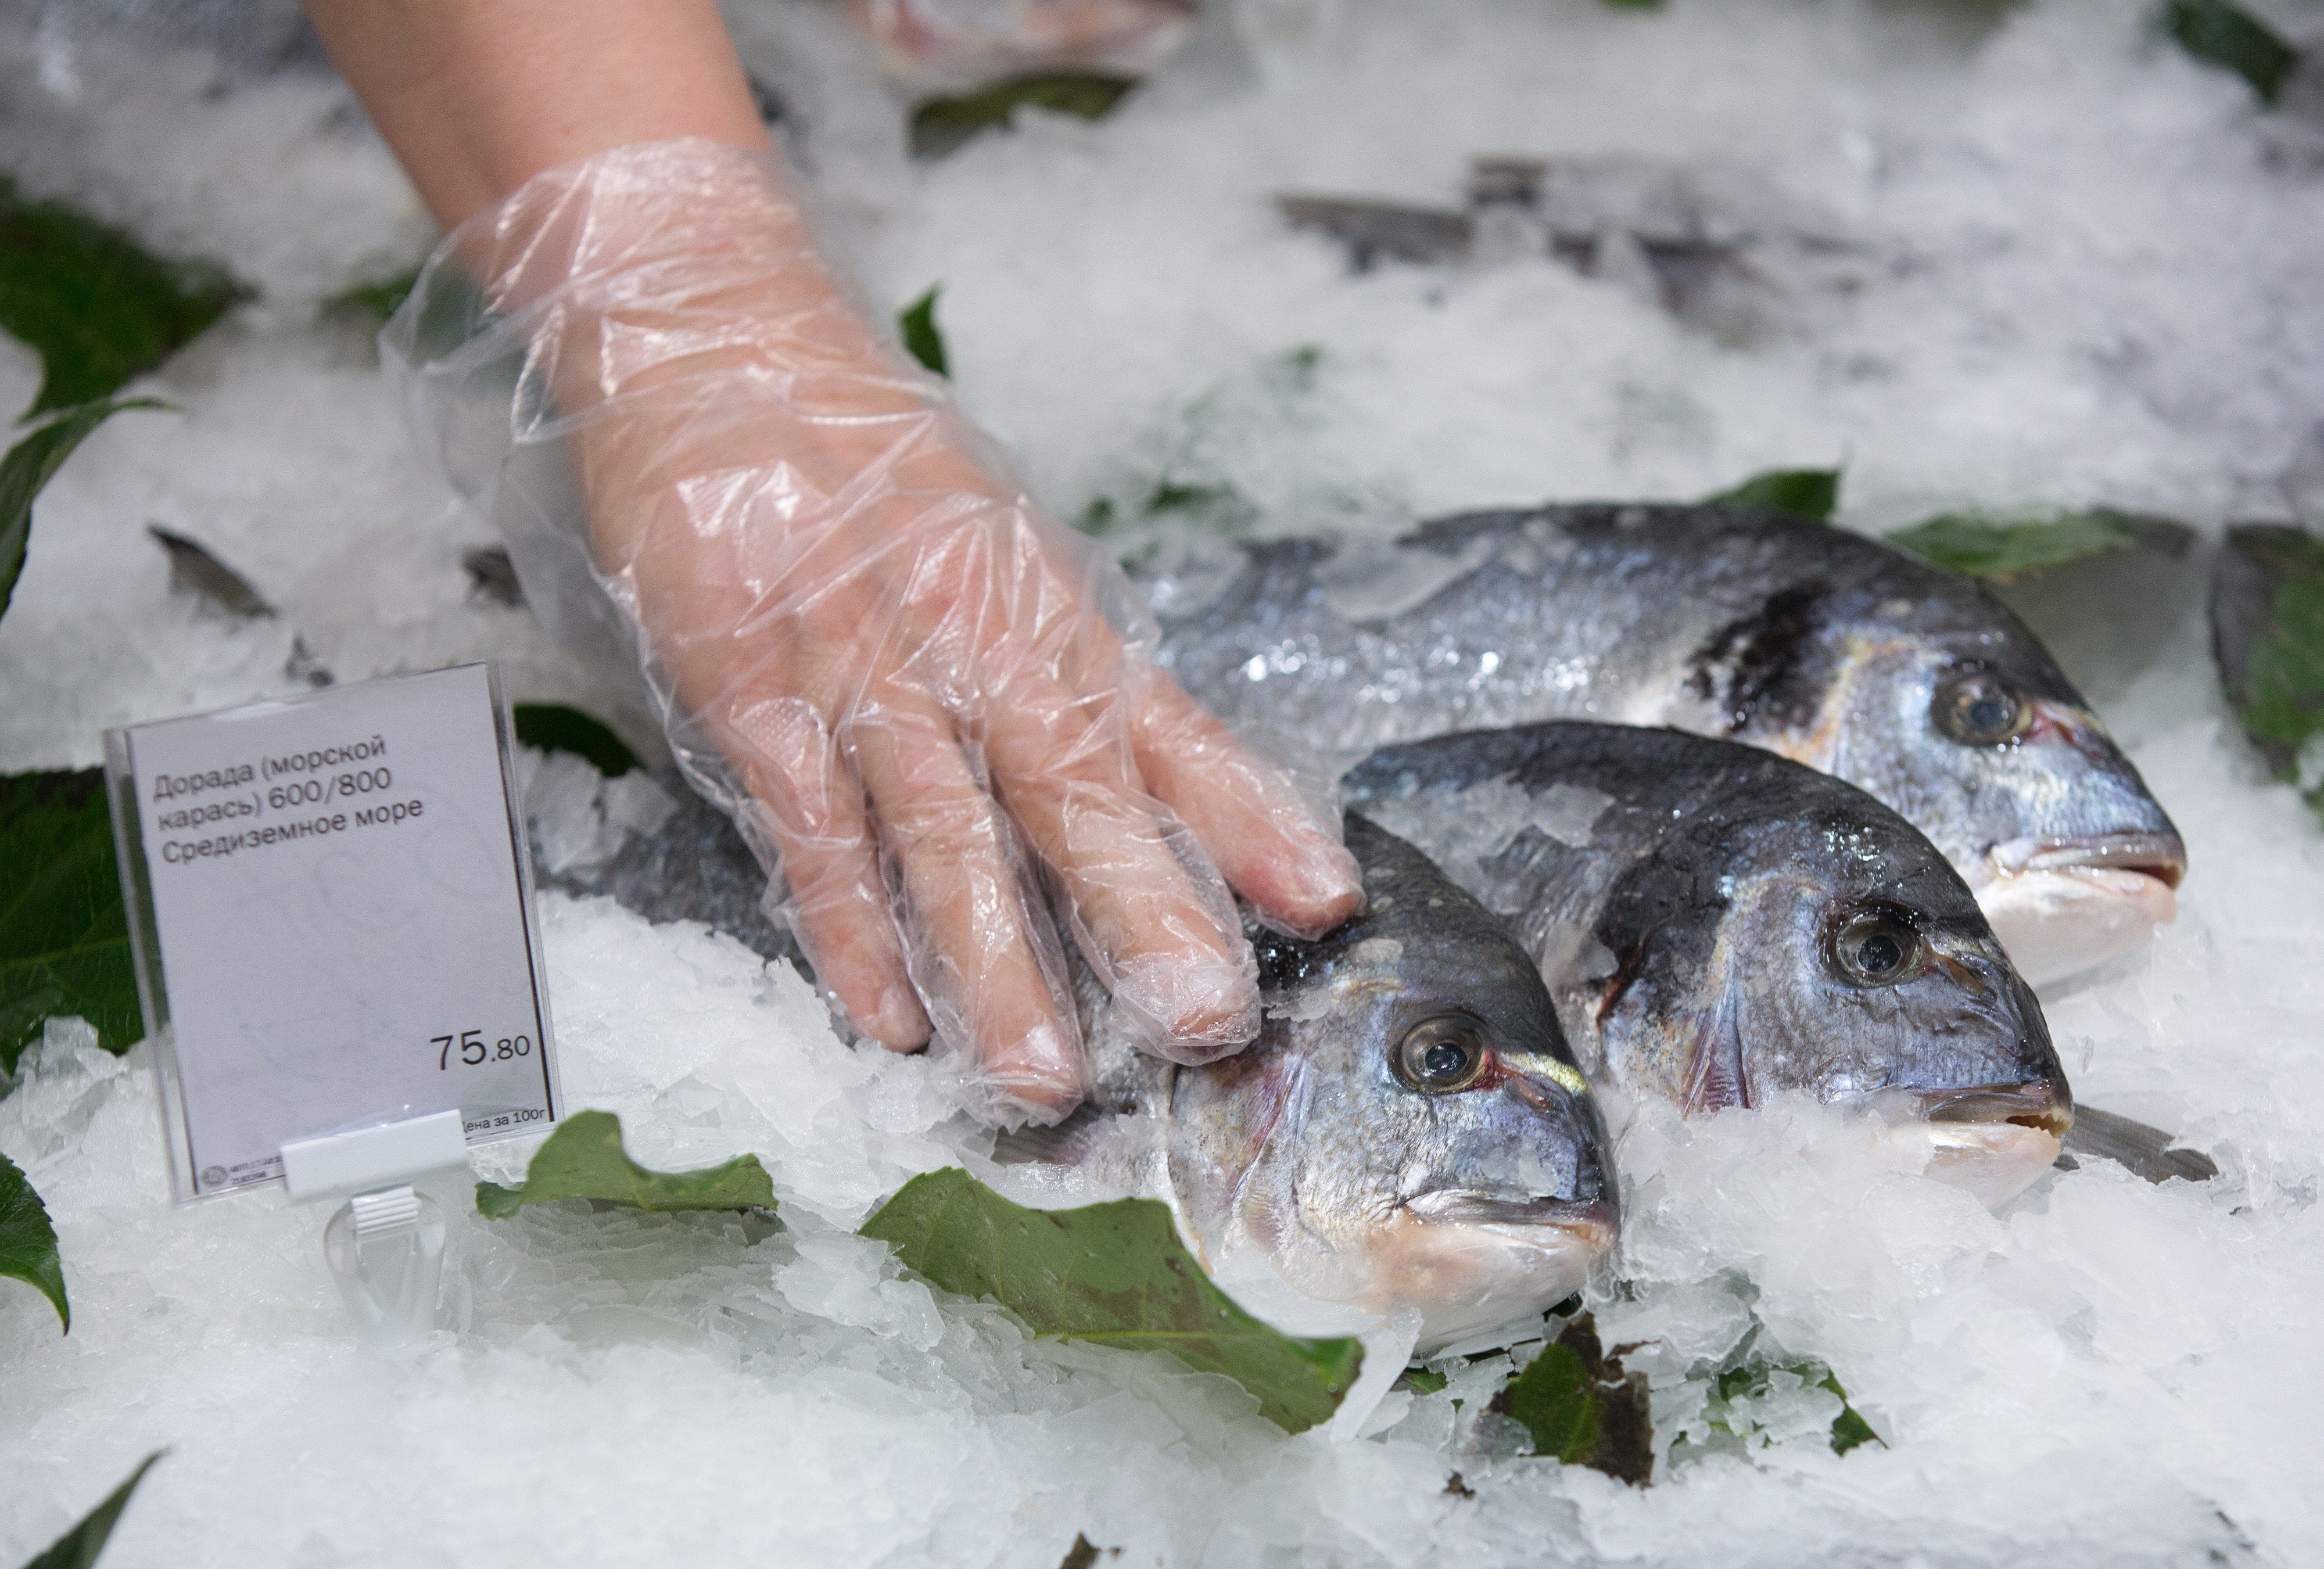 A worker arranges fresh dorado fish in a display of ice at the fishmonger's counter of an Azbuka Vkusa OOO, which translates as 'Elements of Taste,' supermarket at the Neglinnaya Plaza shopping center in Moscow, Russia, on Thursday, Feb. 19, 2015. Russia in August banned food imports from the U.S. and the European Union in retaliation for the economic sanctions, just as plunging oil prices sent its energy-dependent economy closer to recession. Photographer: Photographer: Andrey Rudakov/Bloomberg via Getty Images